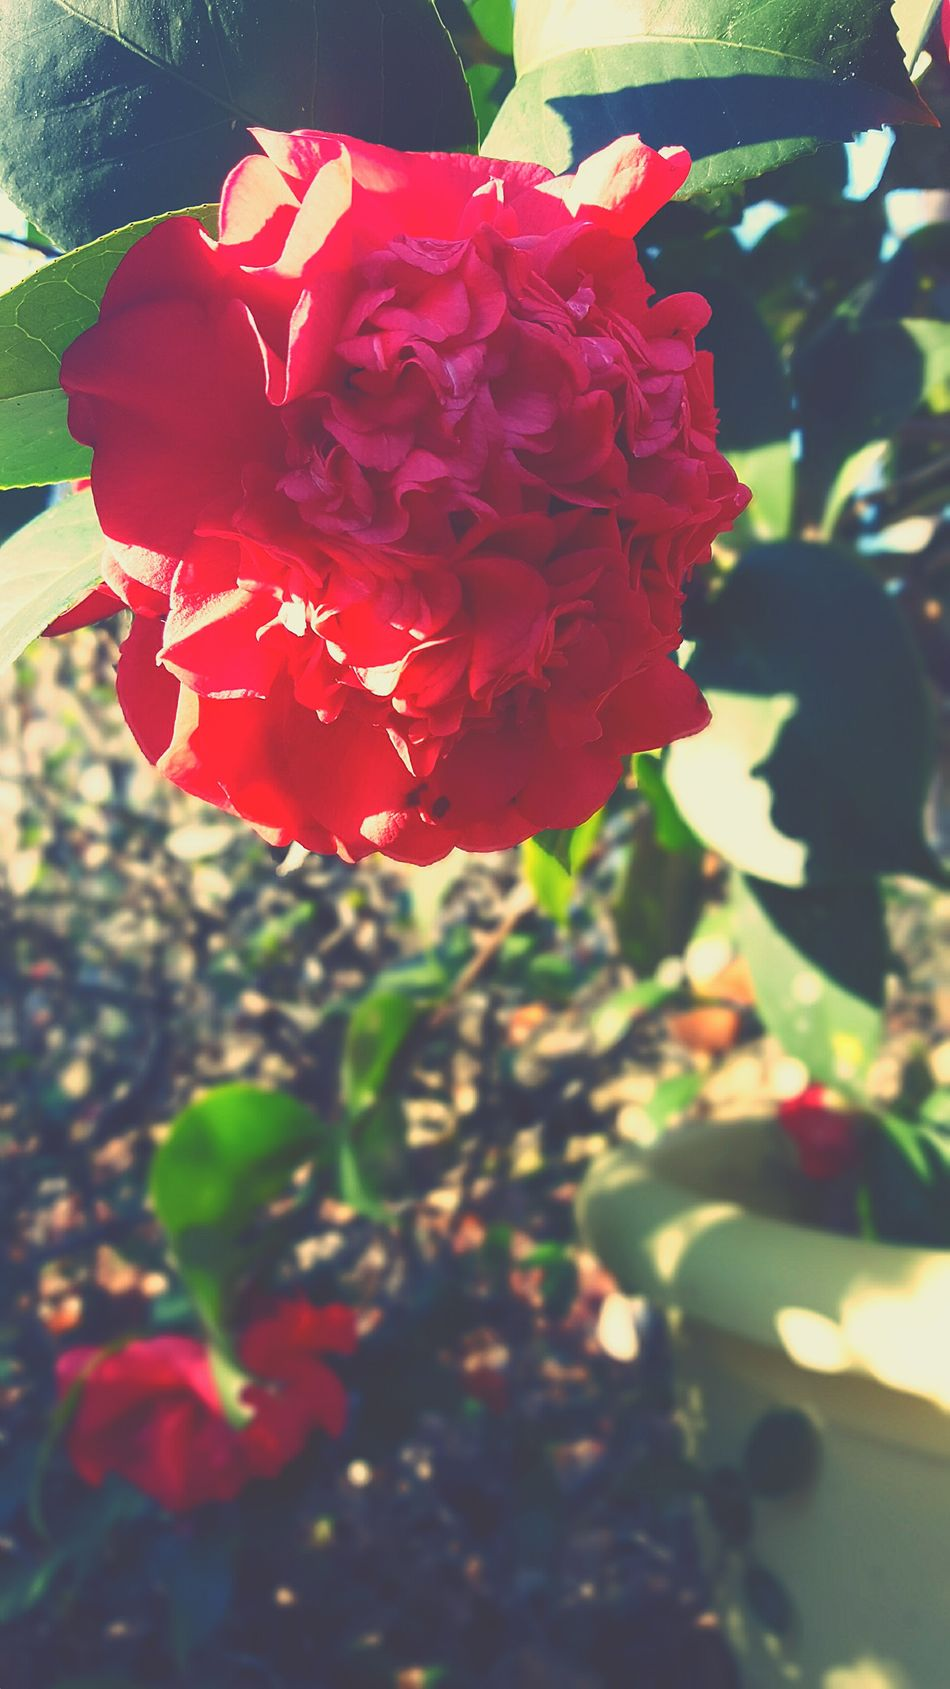 Flower Nature Fragility Red Beauty In Nature Plant Petal Camellia Flower Focus On Foreground Growth Flower Head Freshness Outdoors Day Close-up No People Winter Blooms Sunlight And Shadow Camelliaflower Plant Petal Texture Pattern Biological Form Bright